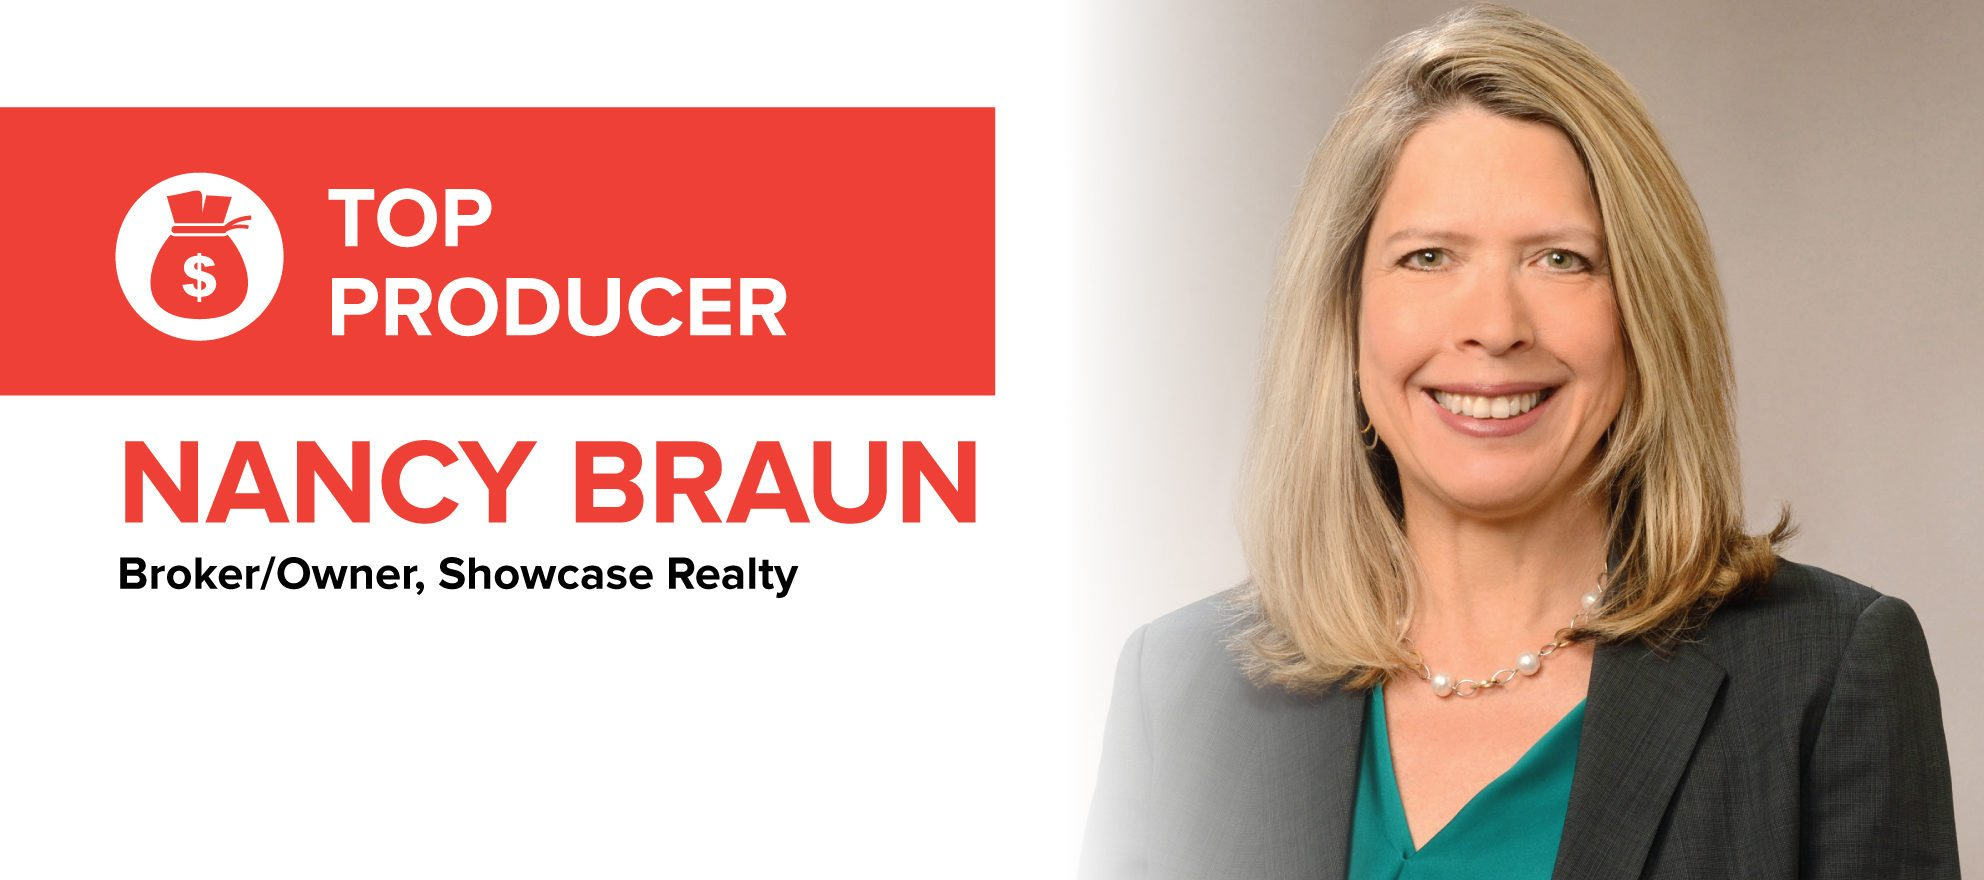 Nancy Braun on how she's fulfilling her father's dreams as a real estate broker